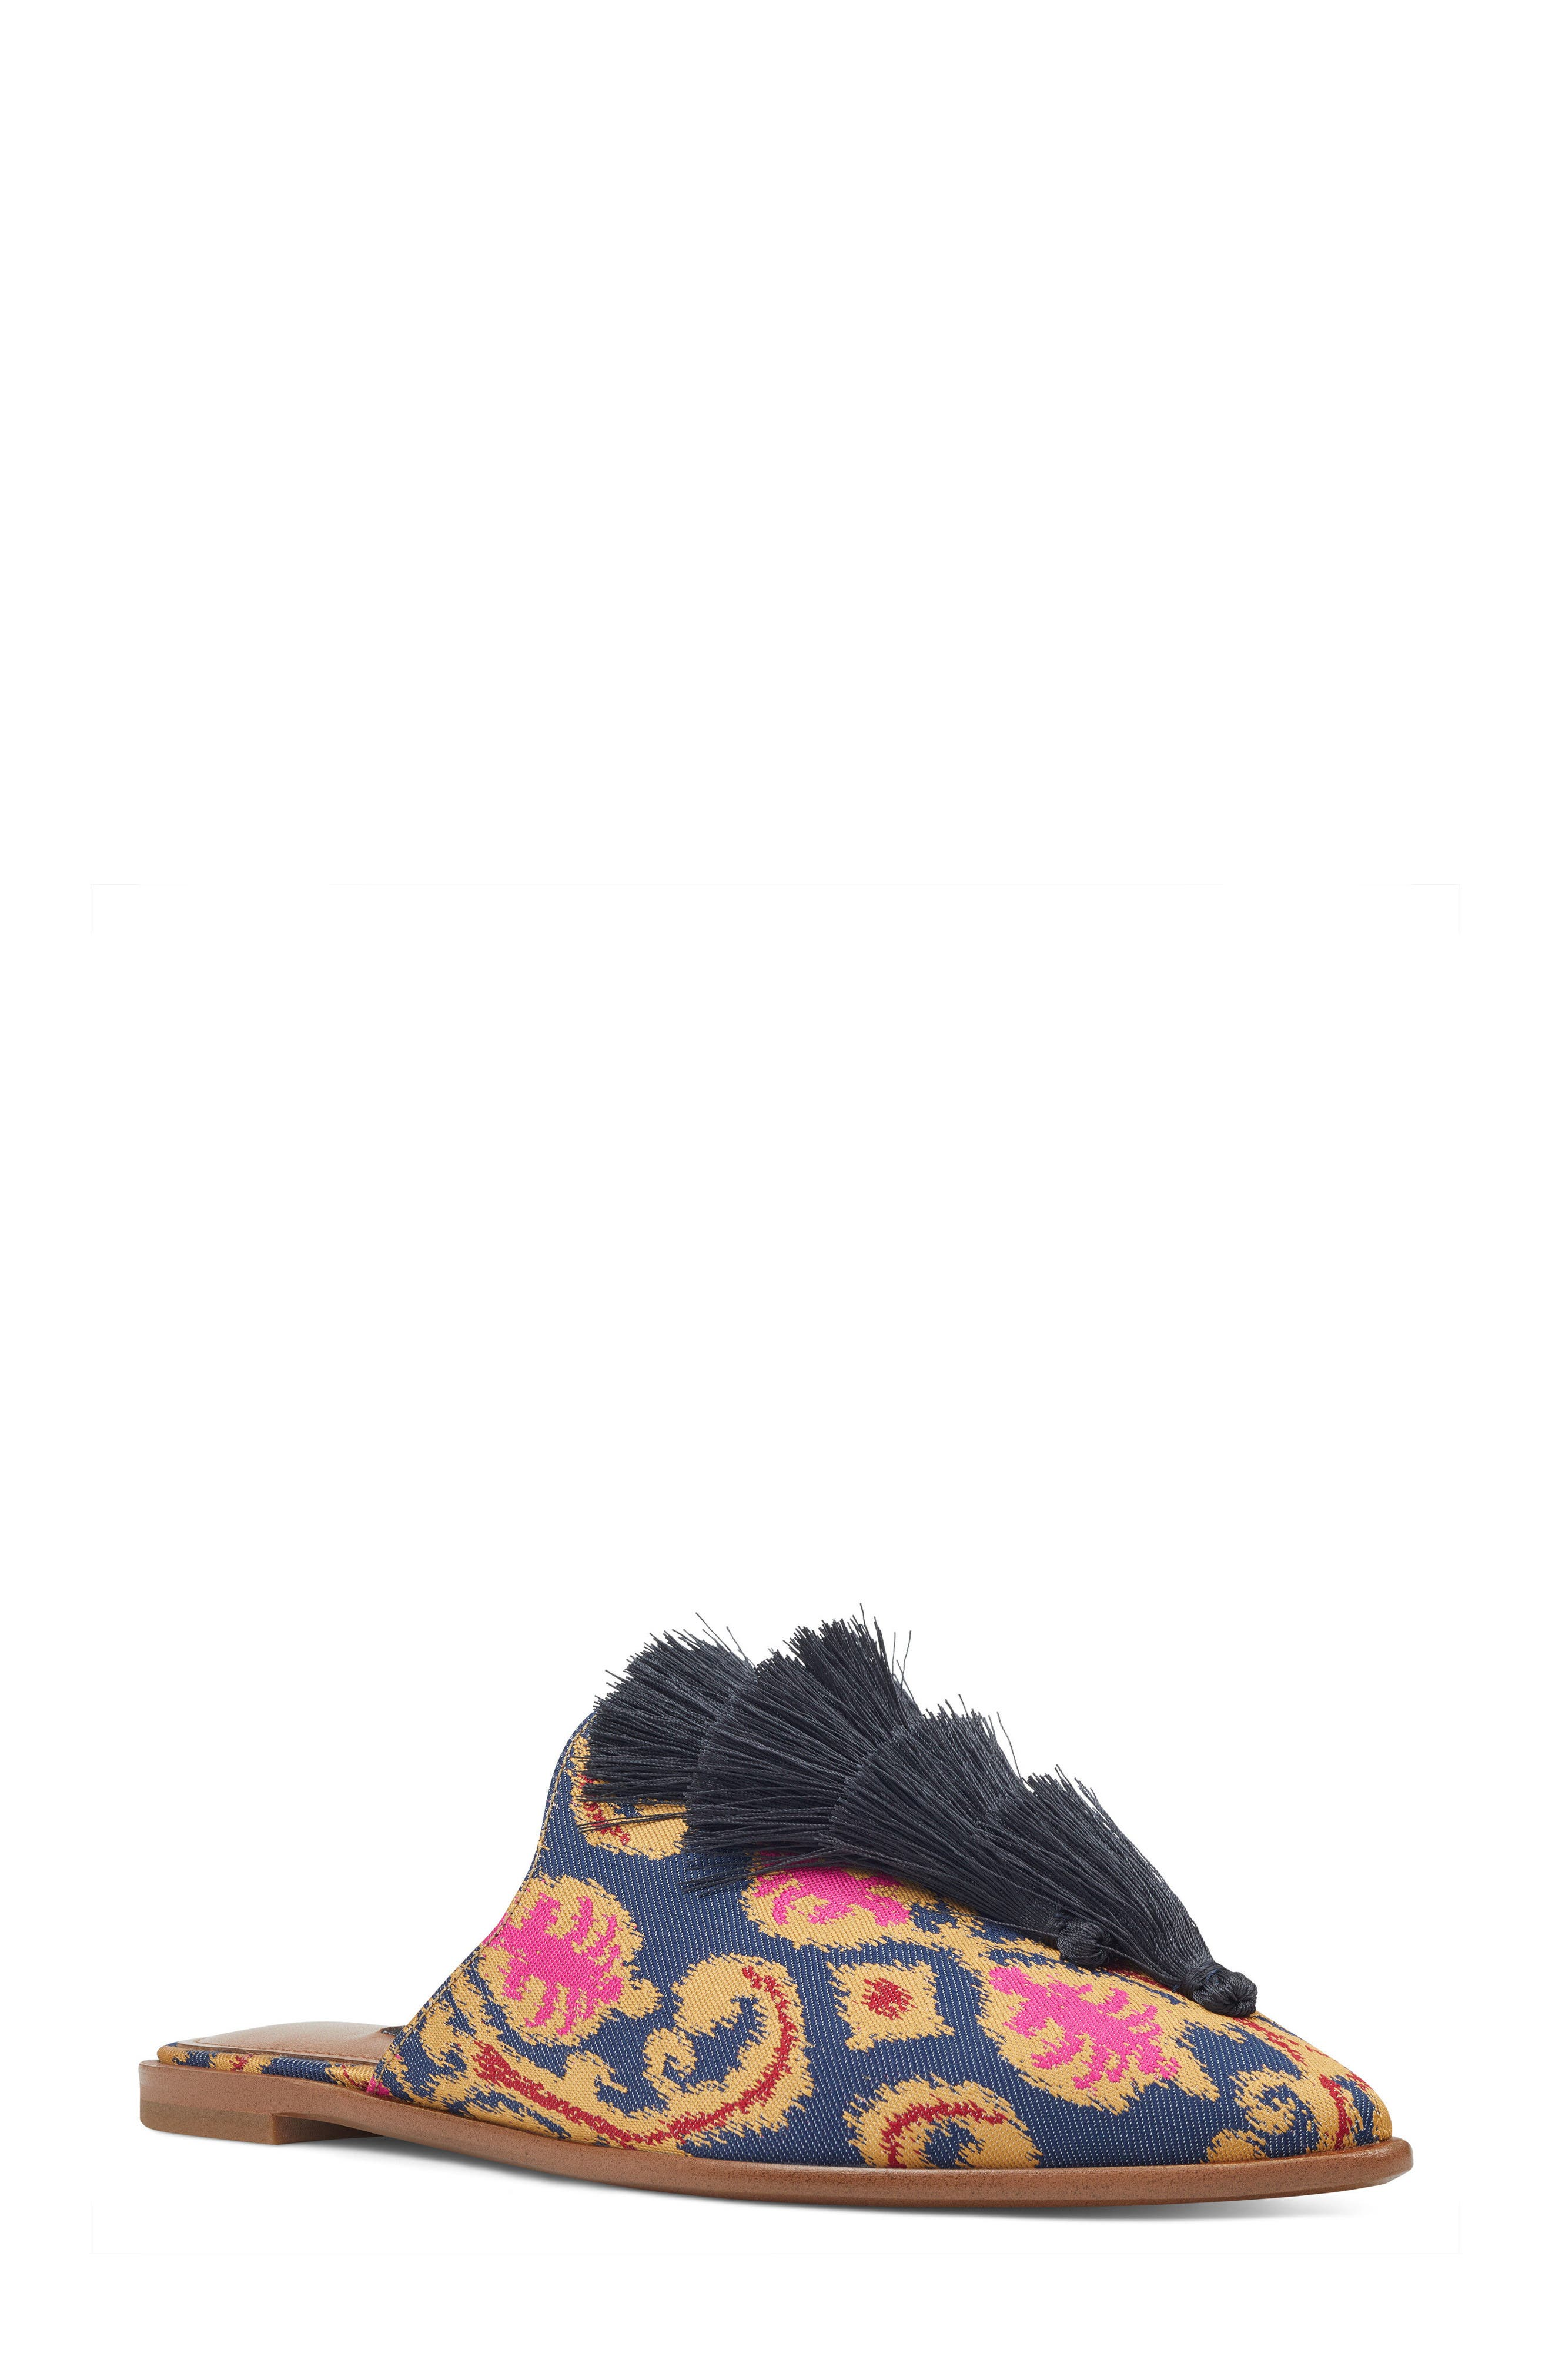 Ollial Fringed Loafer Mule,                             Main thumbnail 1, color,                             BLUE MULTI FABRIC